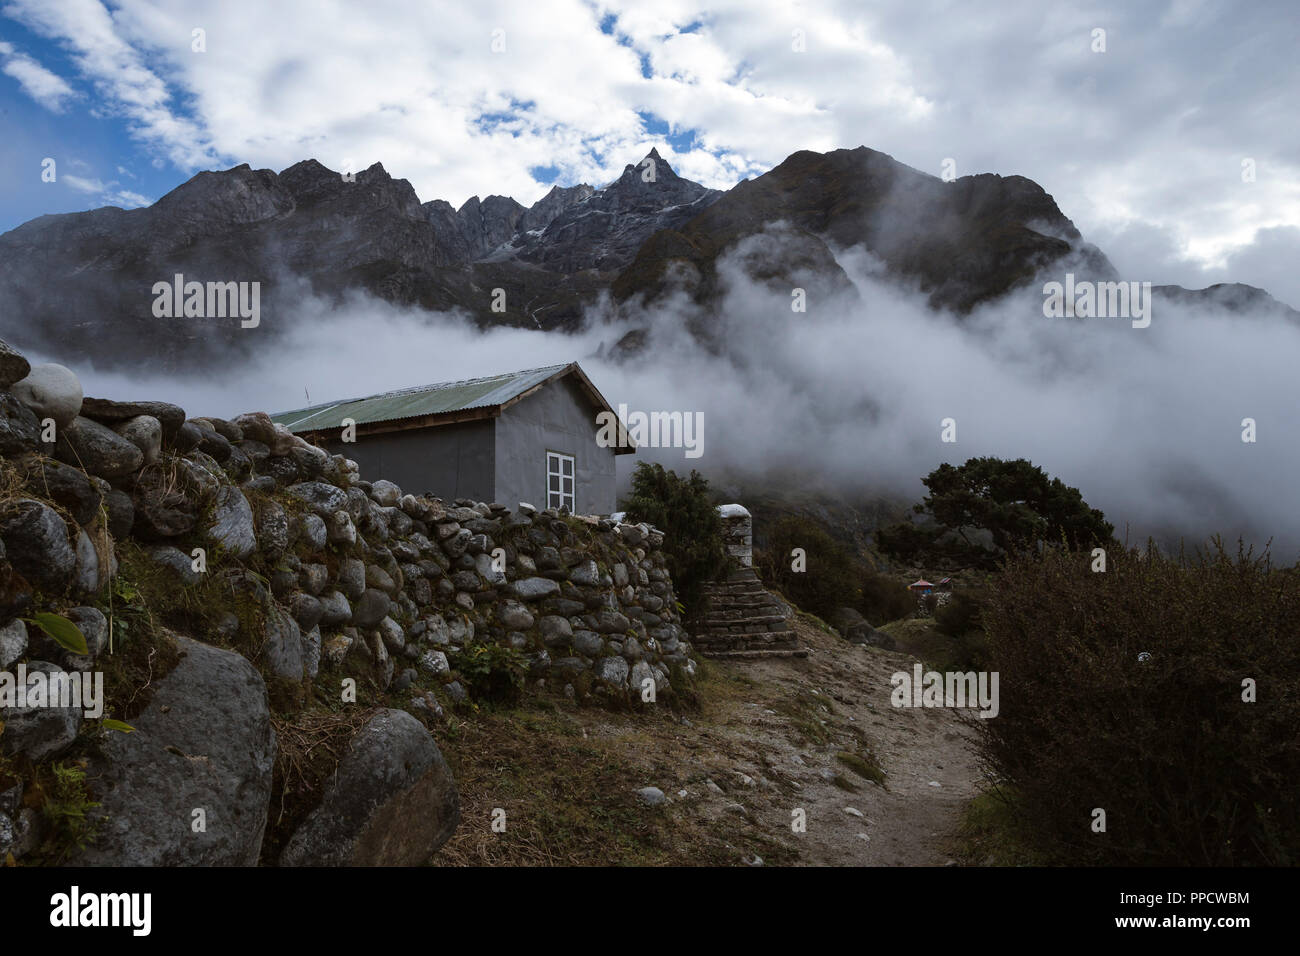 Cloudy monsoon weather lingers in the village of Thame, one of the villages less frequented by trekkers in the Solu Khumbu district of Nepal - Stock Image